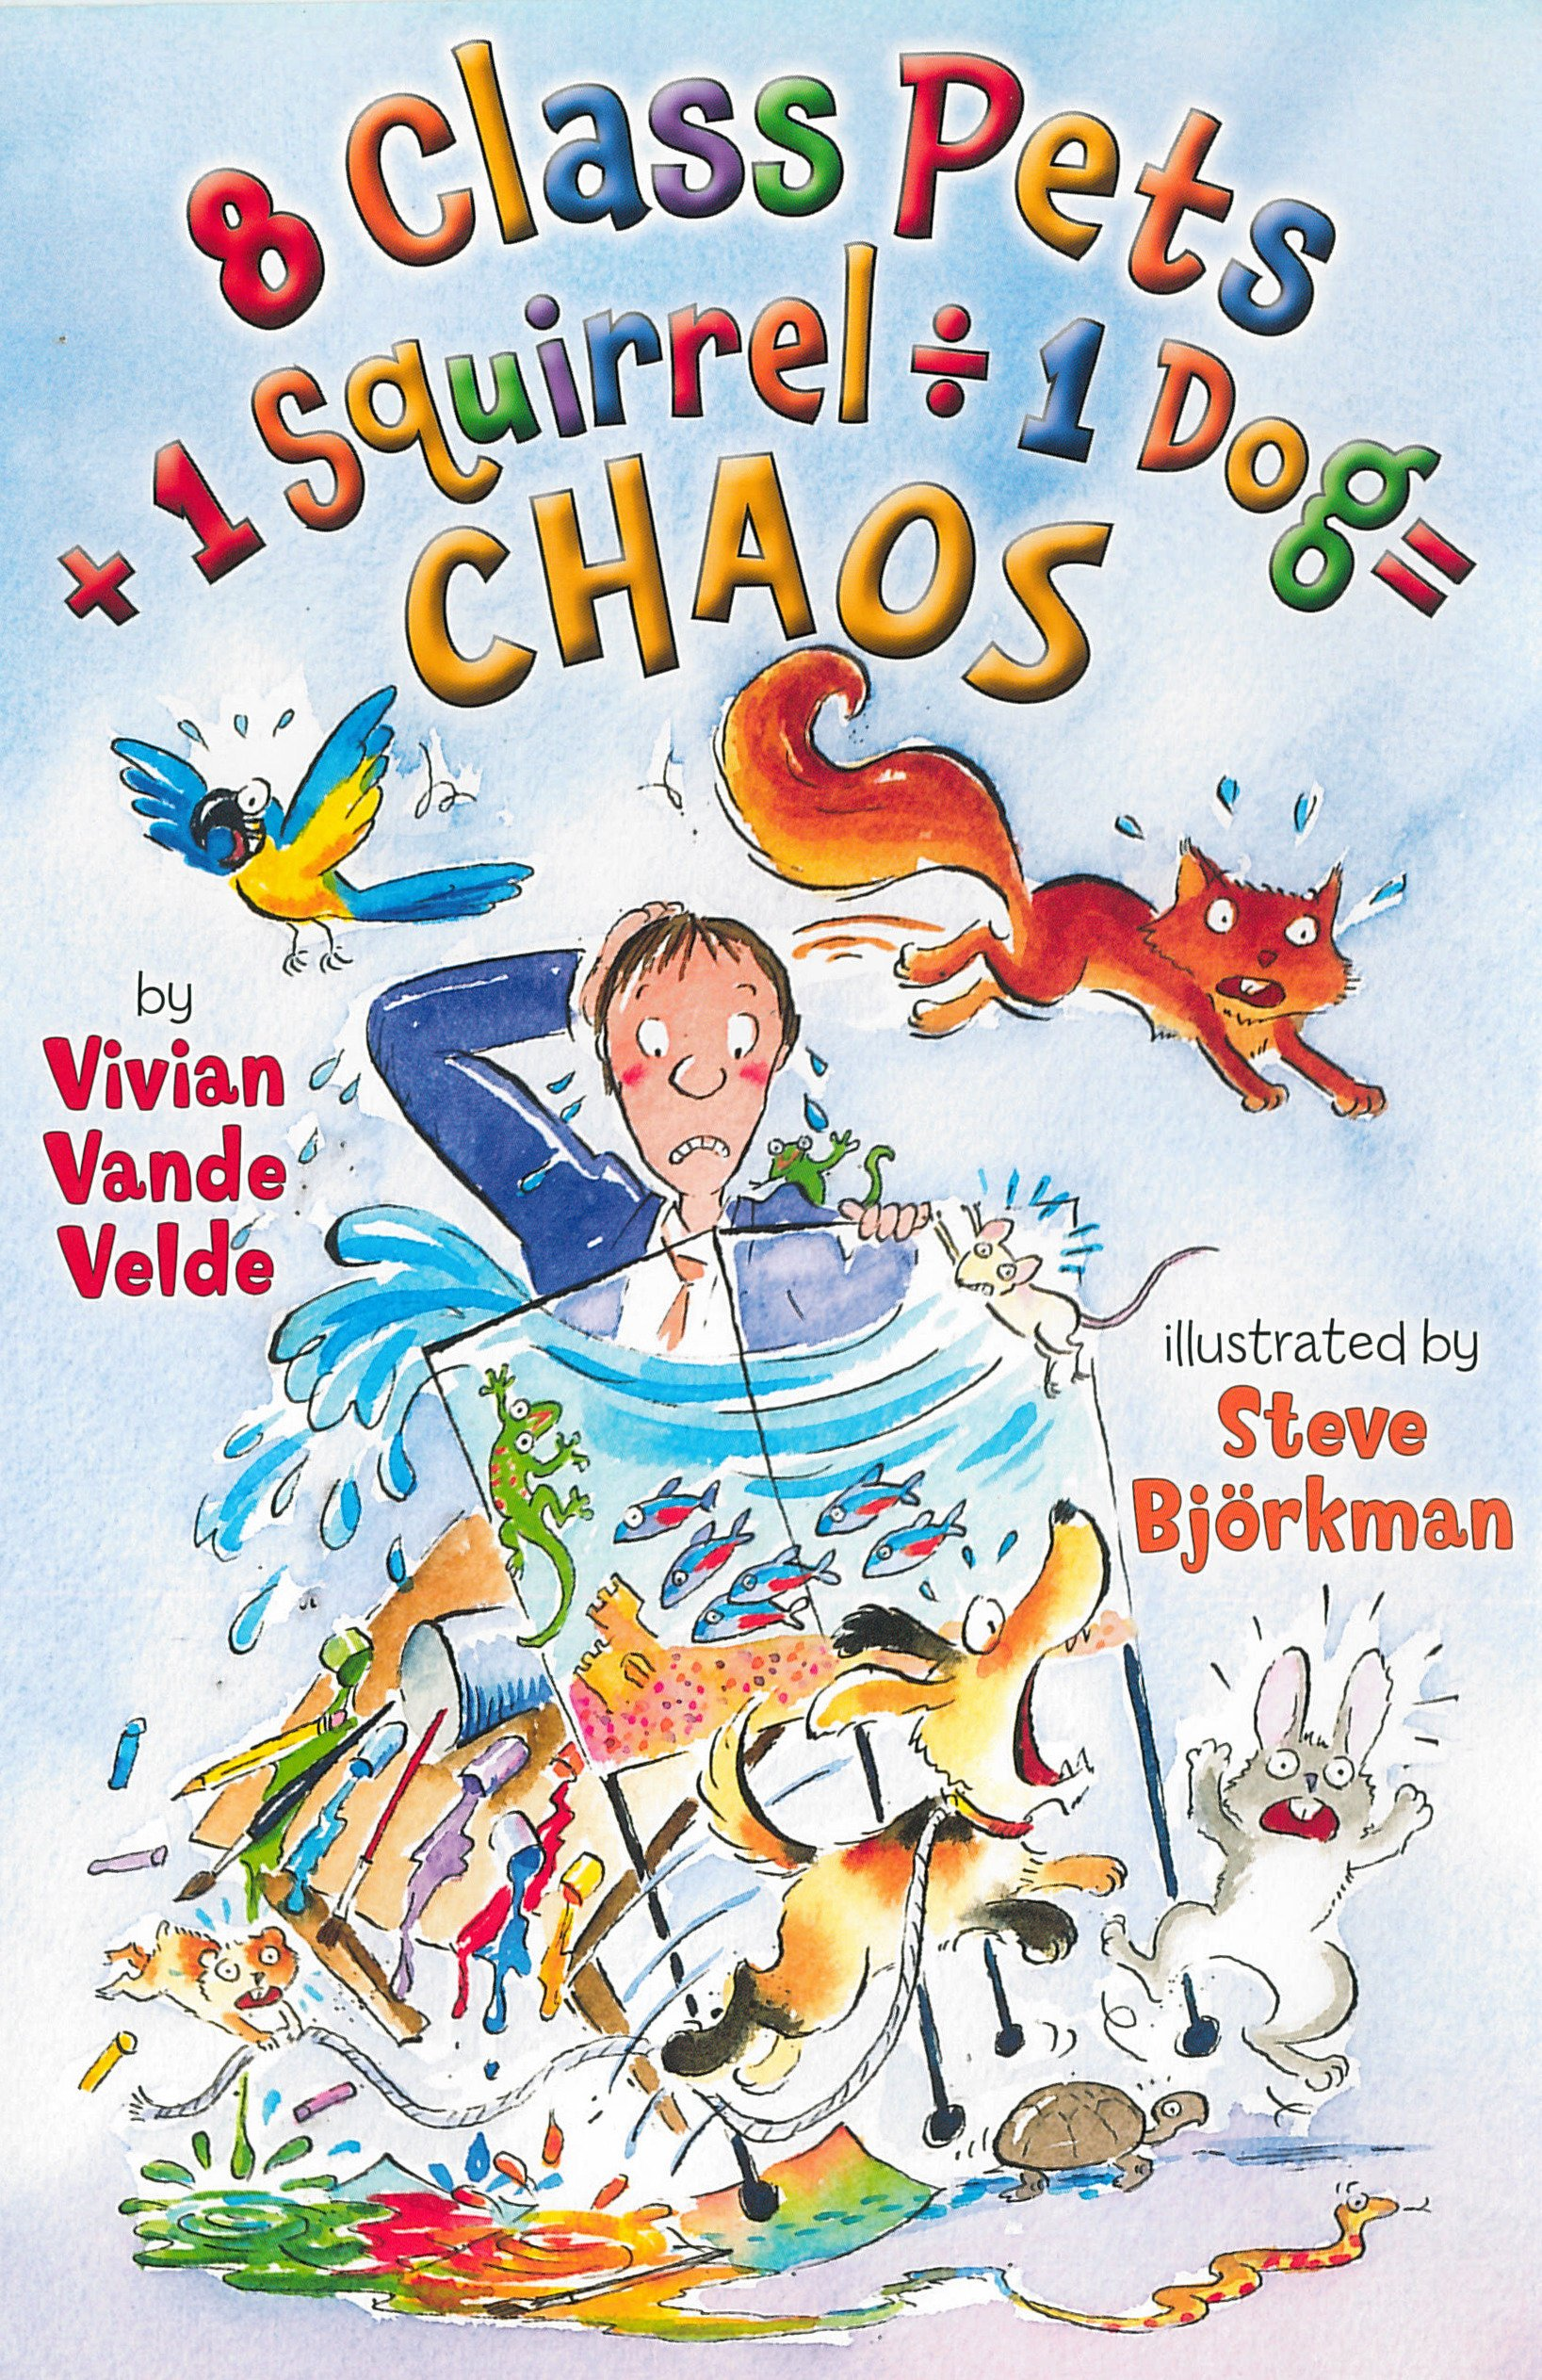 Book cover by 8 class pets + 1 squirrel / 1 dog = chaos by Vivian Vande Velde illustrated by Steve Bjorkman